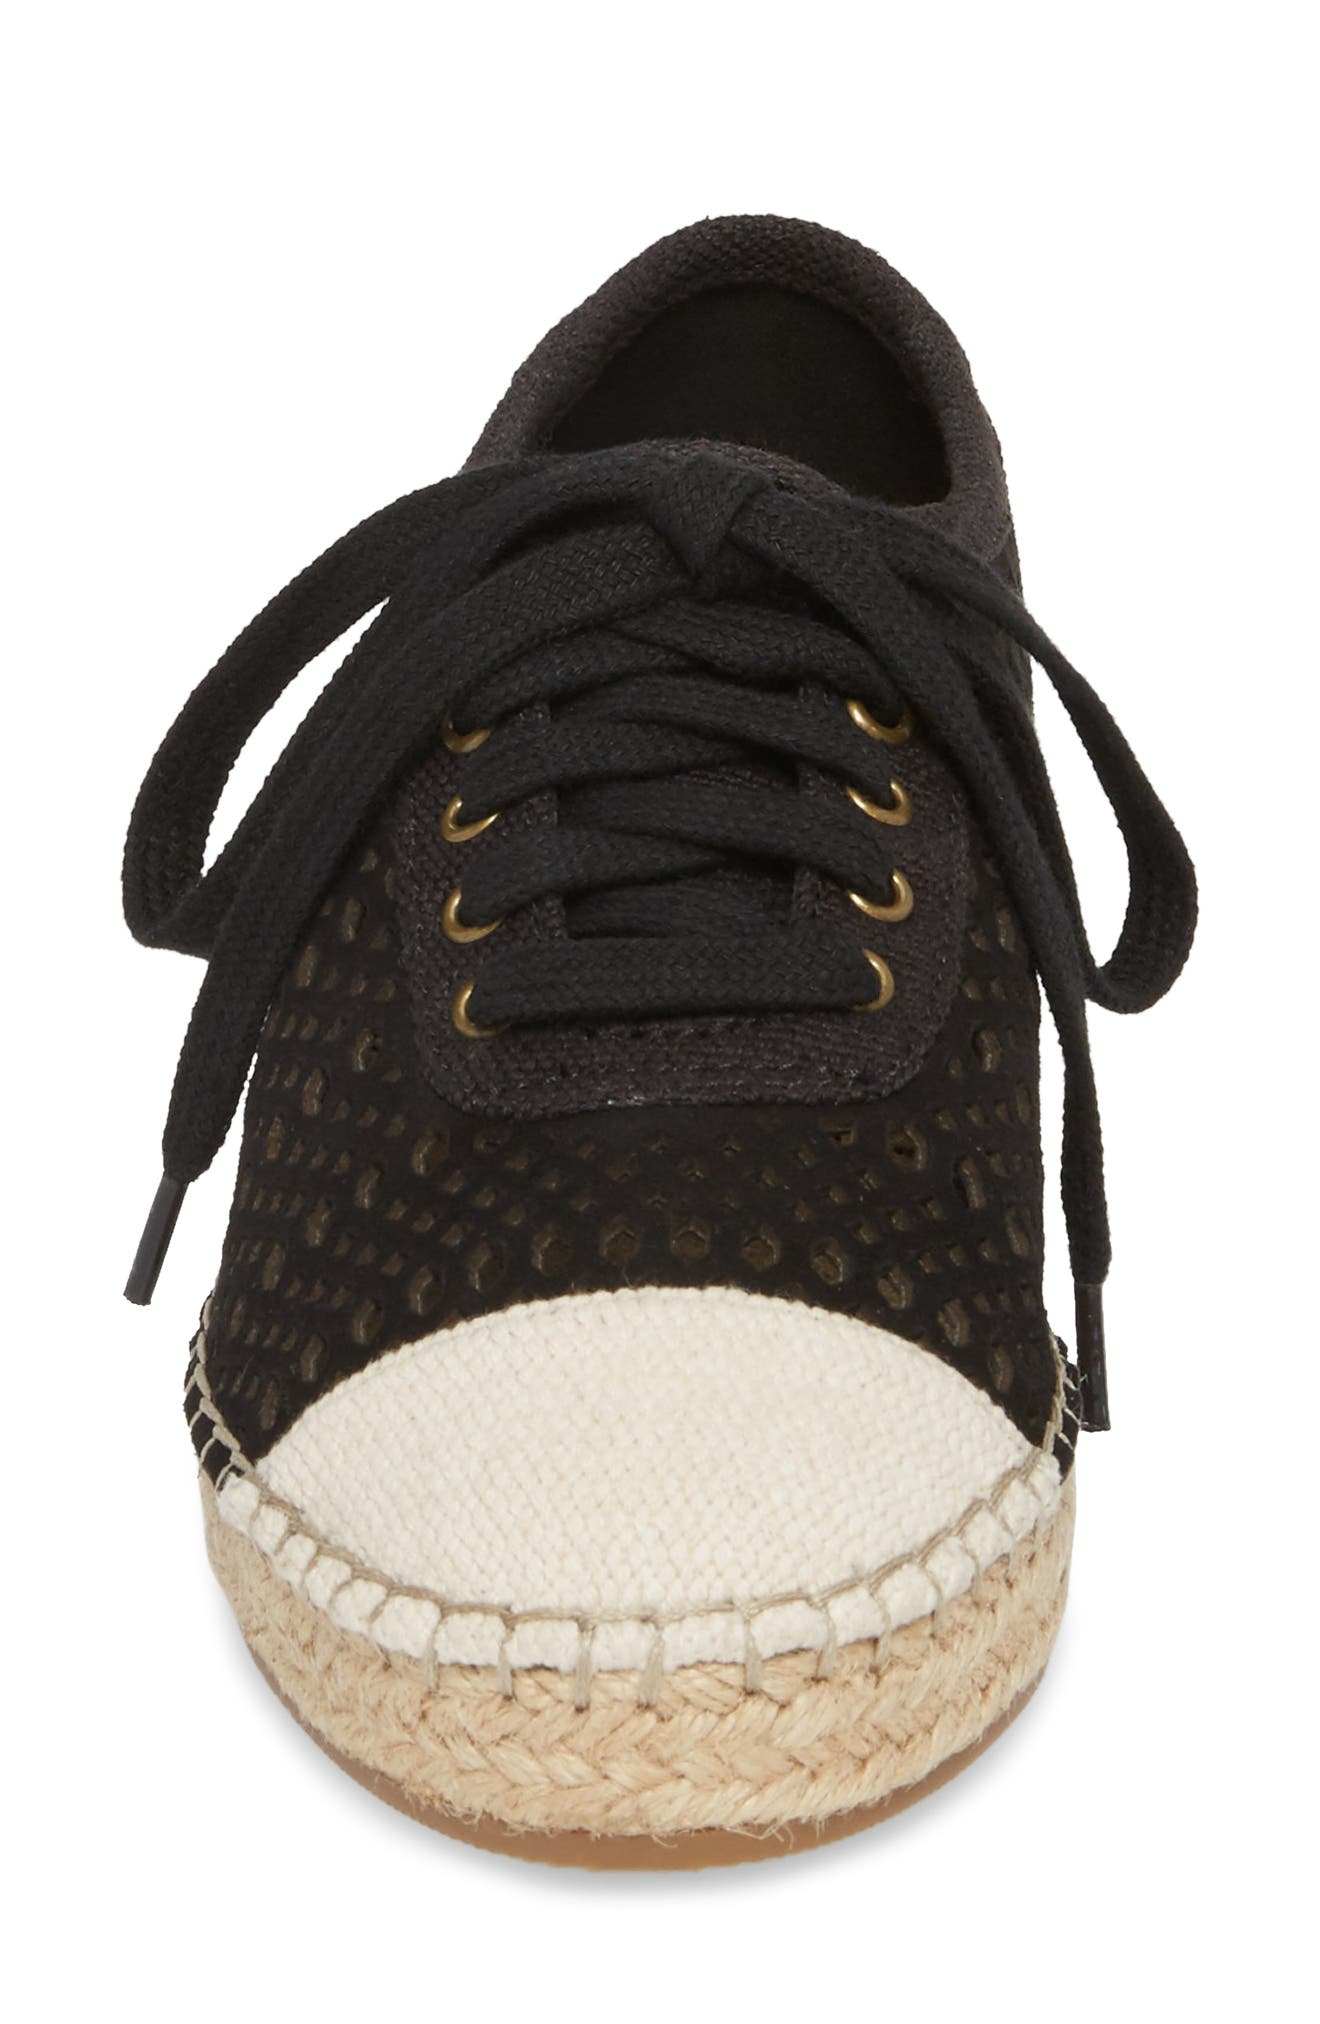 Clementine Espadrille Sneaker,                             Alternate thumbnail 4, color,                             018